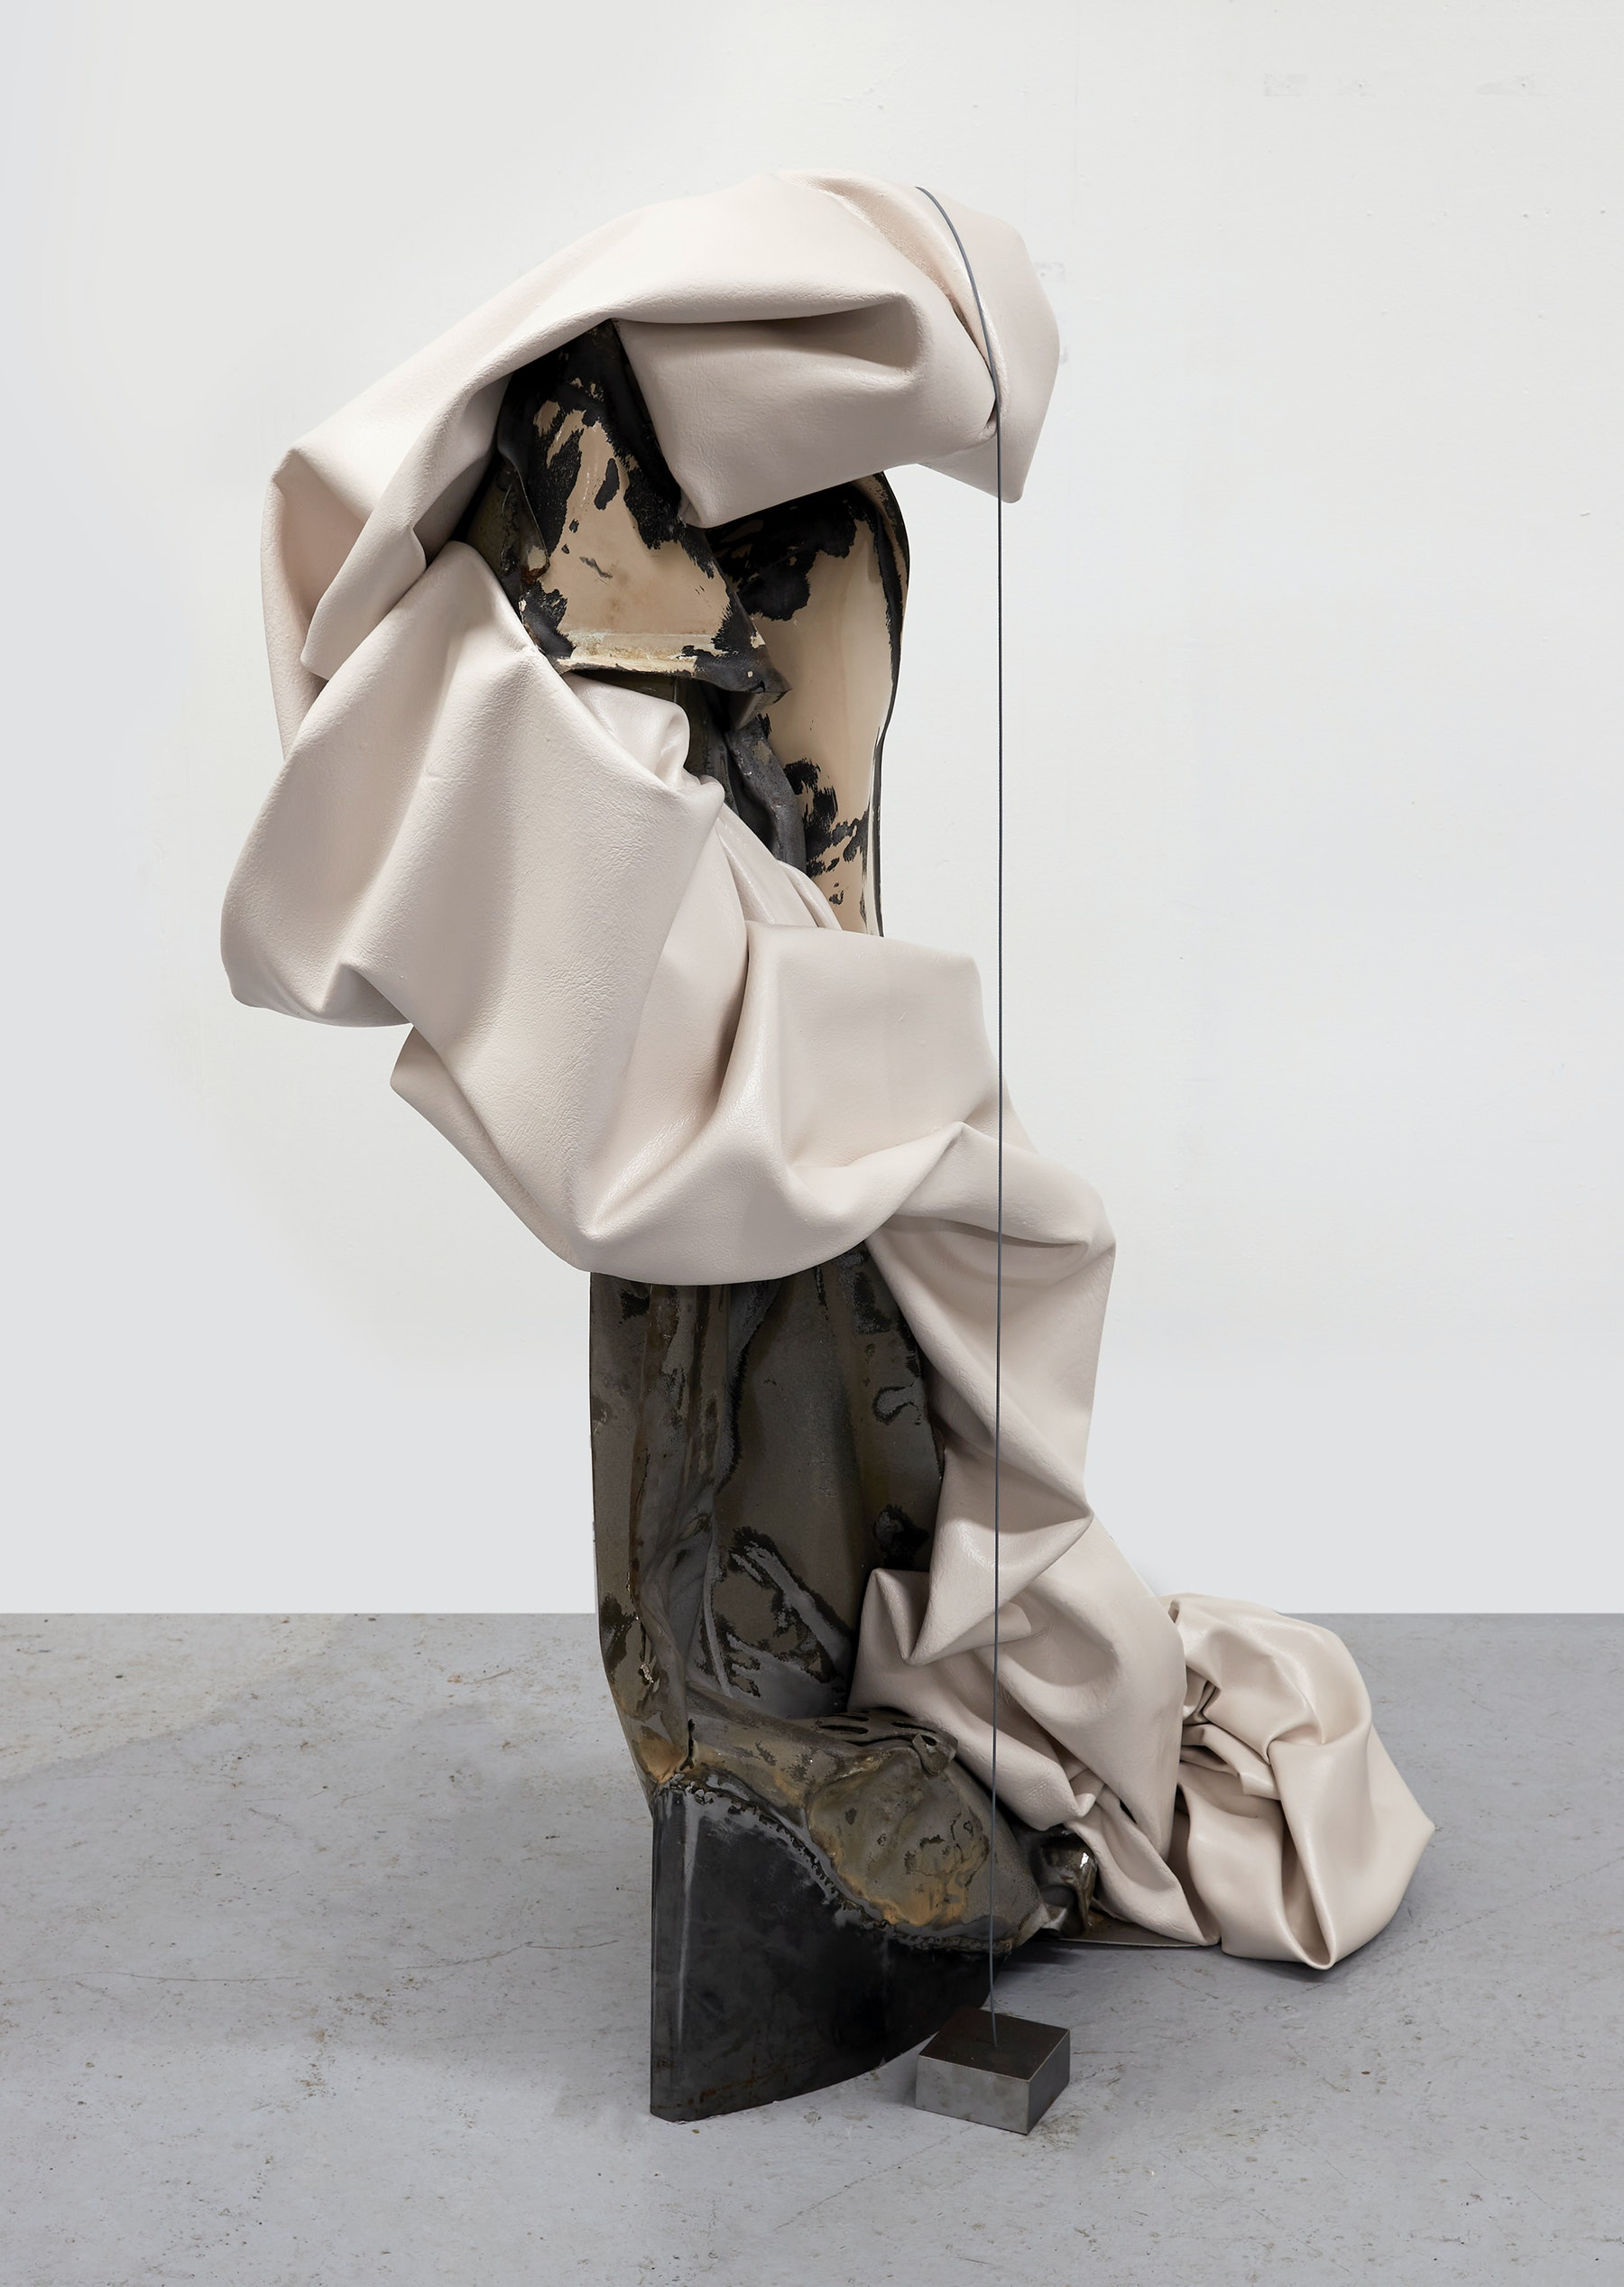 """Kennedy Yanko """"Tidying My Wrath,"""" 2021 Paint skin, metal, steel cable 63"""" x 54"""" x 25"""" [HxWxD] (160.02 x 137.16 x 63.5 cm) Inventory #YAN1022 Courtesy of the artist and Vielmetter Los Angeles Photo credit: Martin Parsekian"""